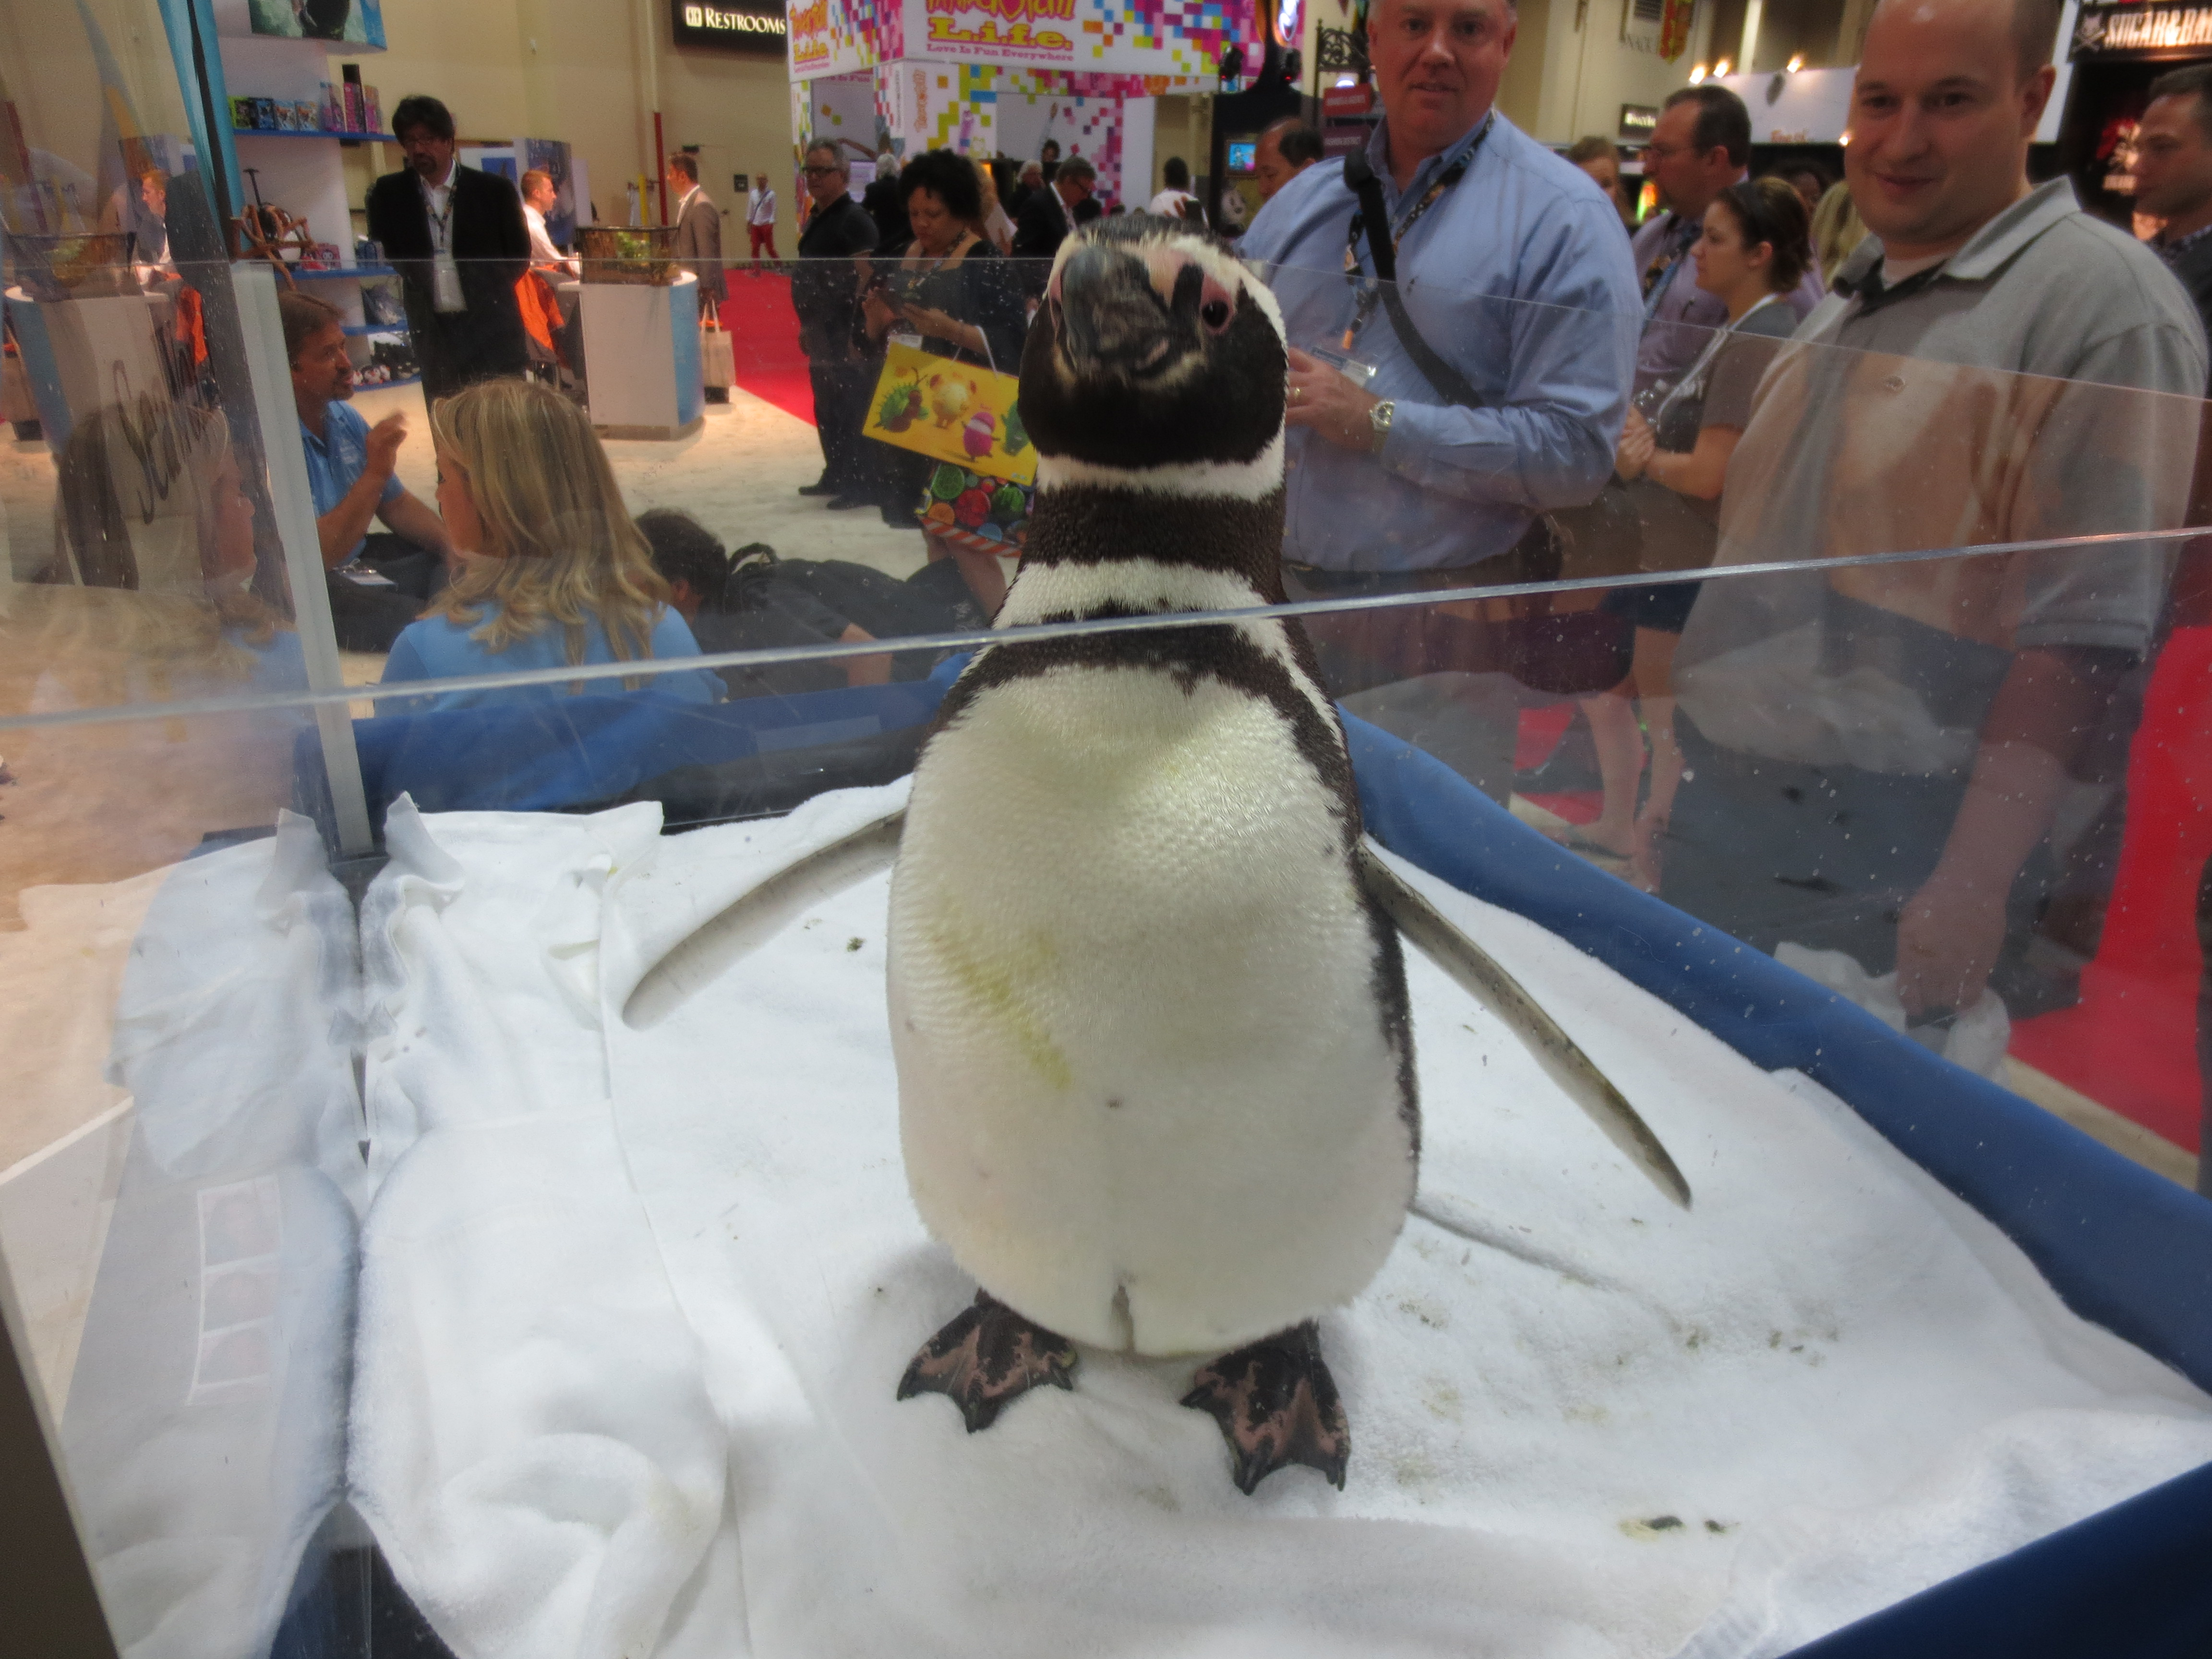 It's too damn hot for a penguin in here!